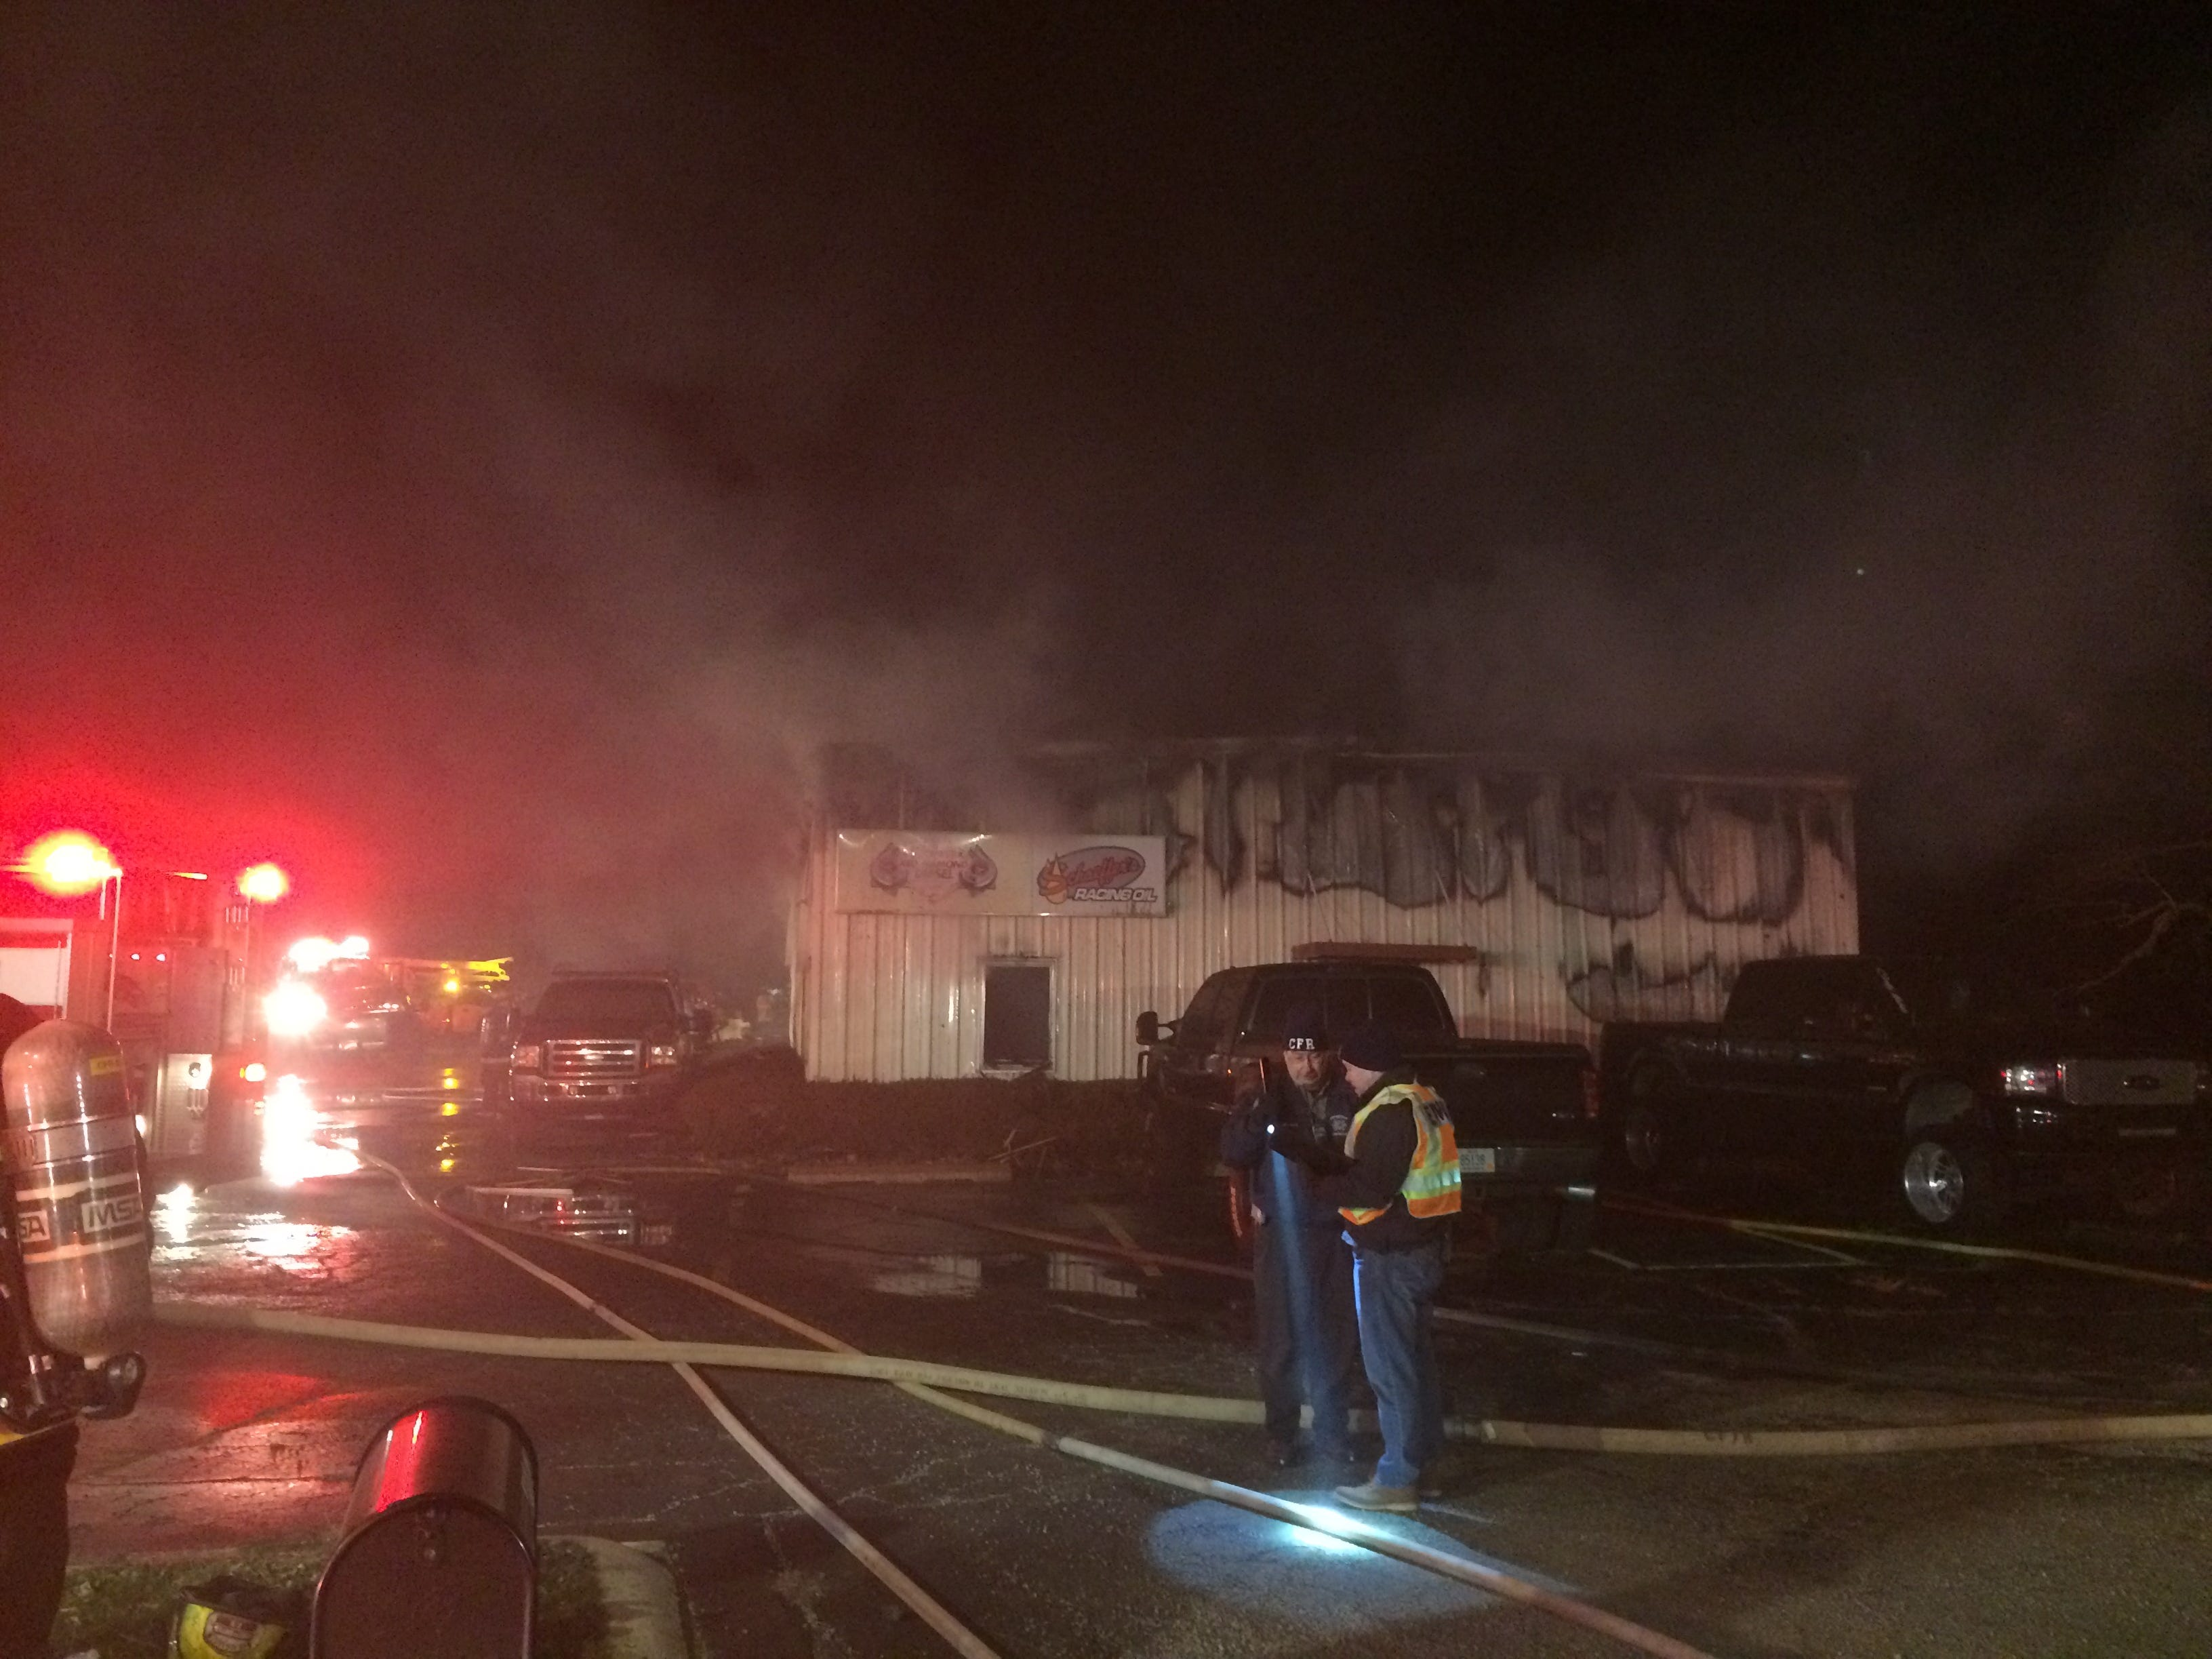 Centerville Fire/Rescue Chief Dennis Spears and Wayne County Emergency Management Agency Director Matthew Cain discuss Thursday night's fire at Red Diamond Diesel repair shop.